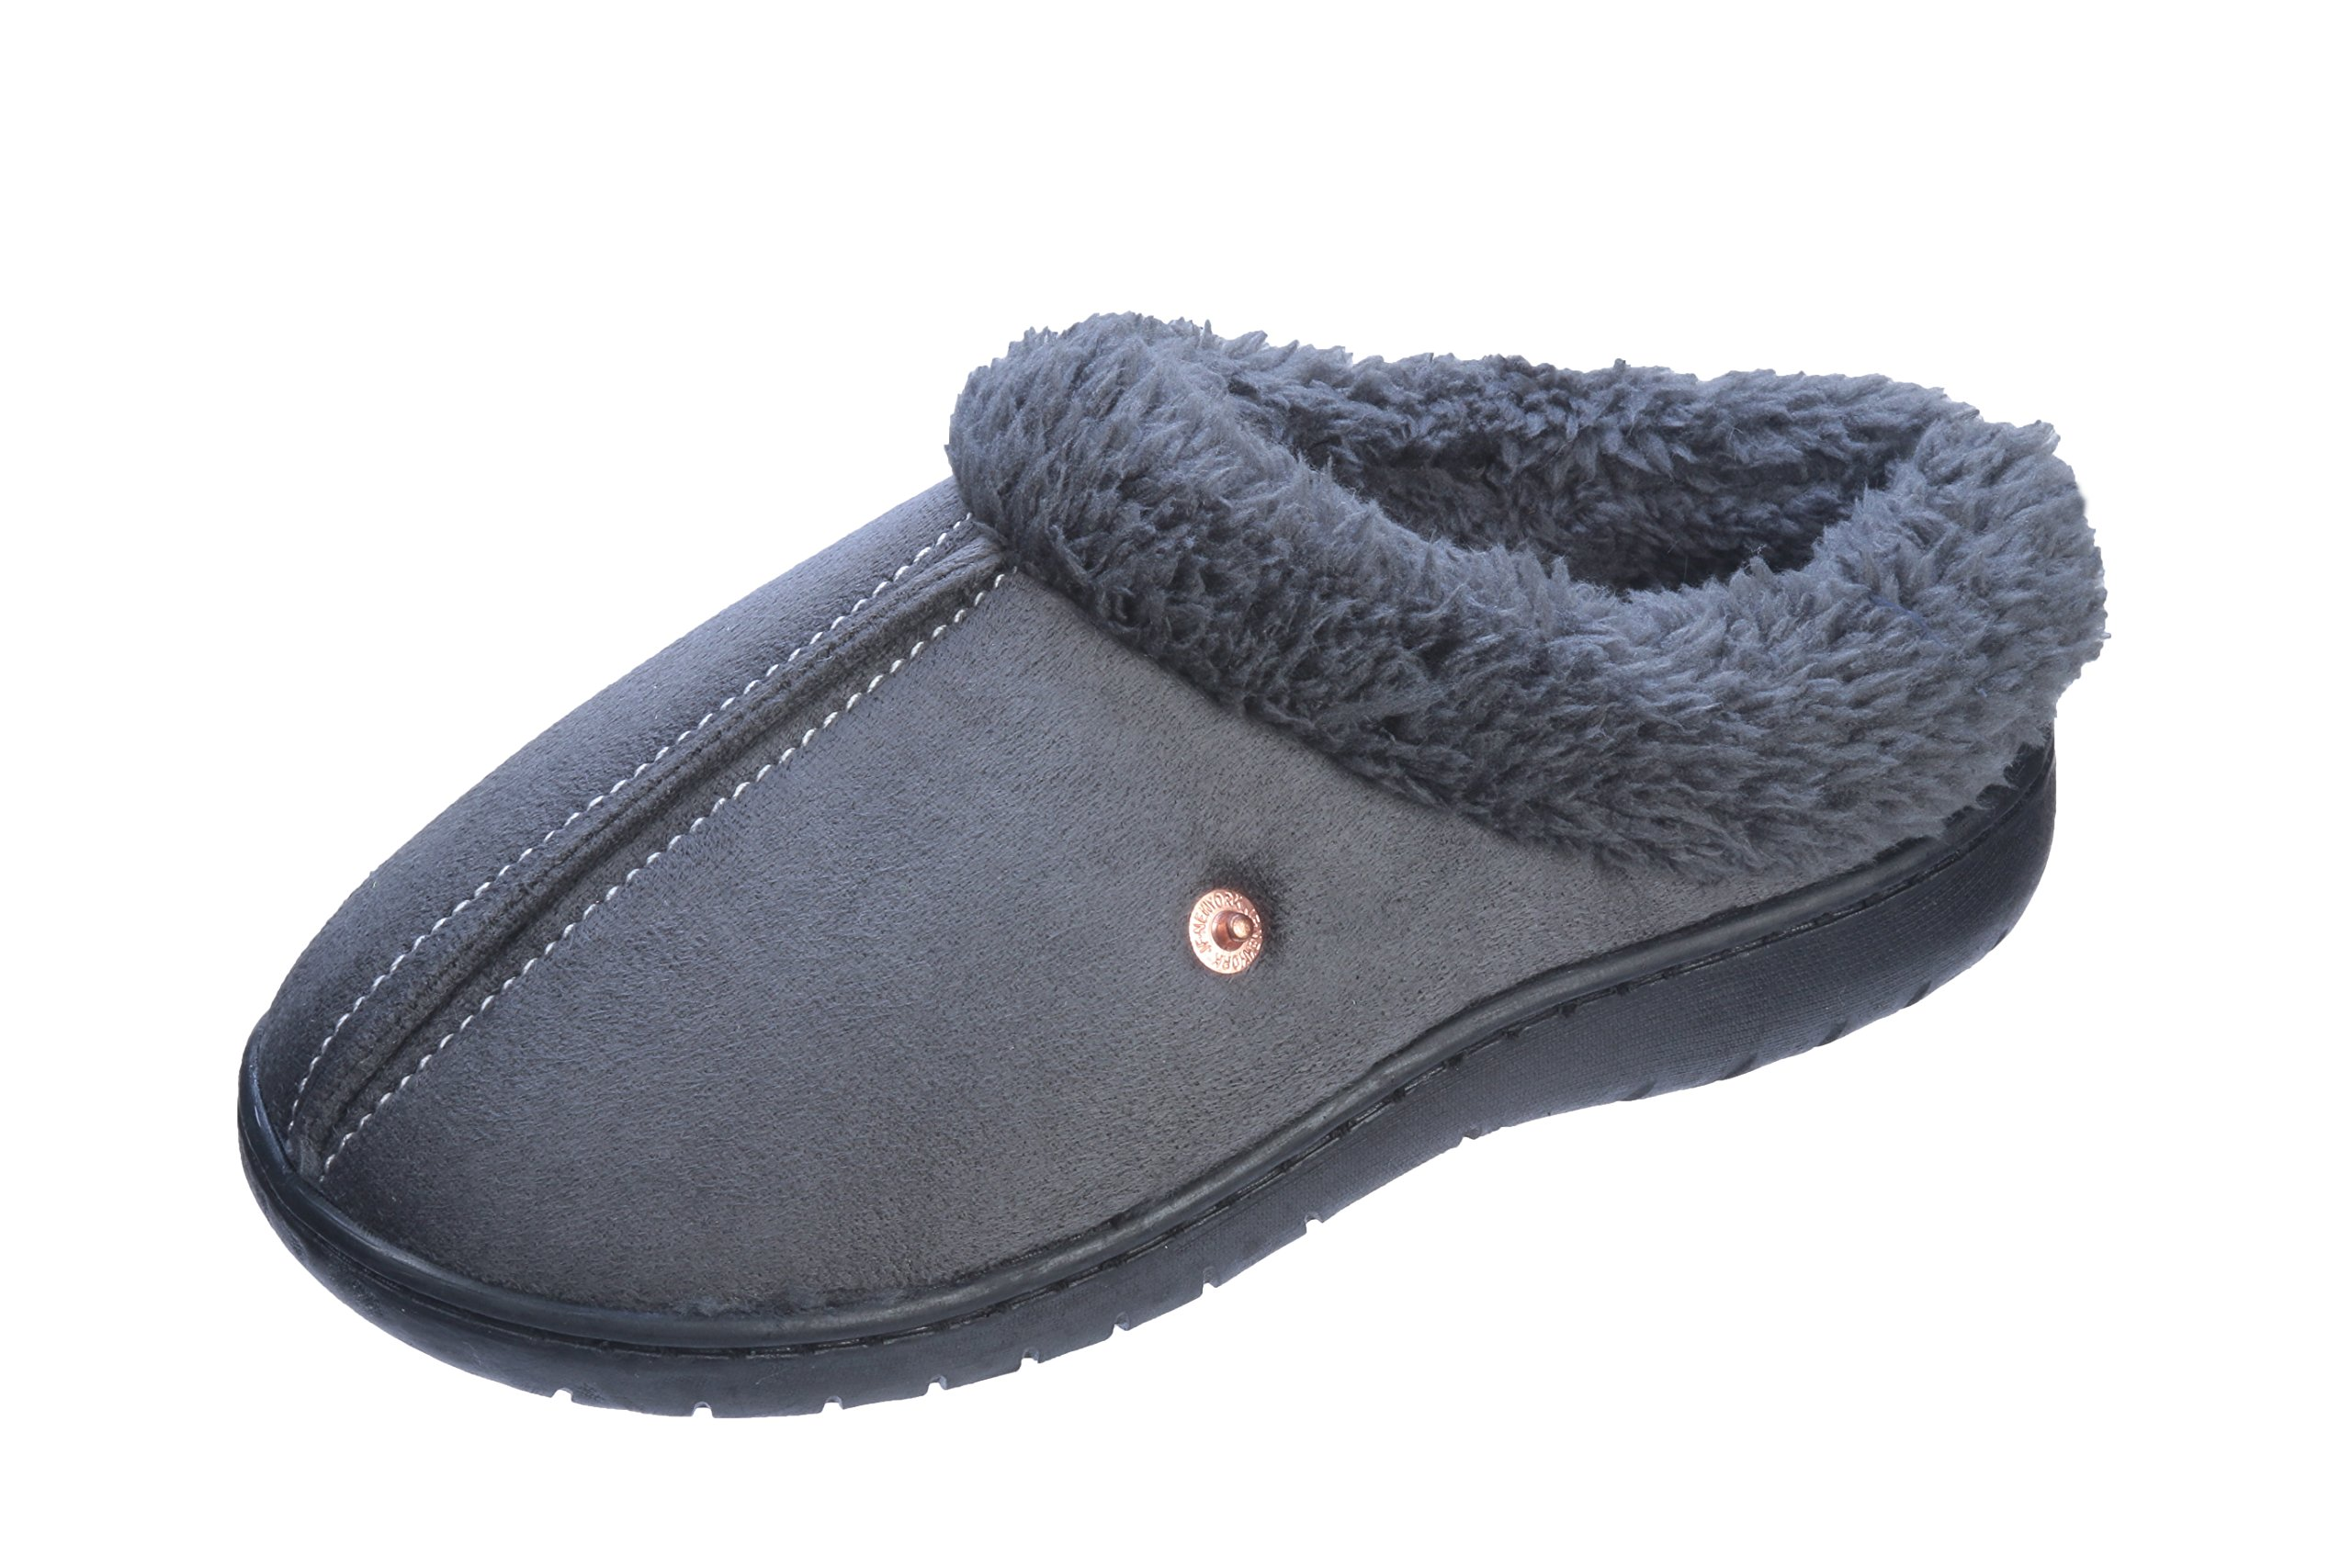 Pupeez Boys Extra Comfort and Warmth Kids Bedroom Slippers, 2-3 M US Little Kid, Gray